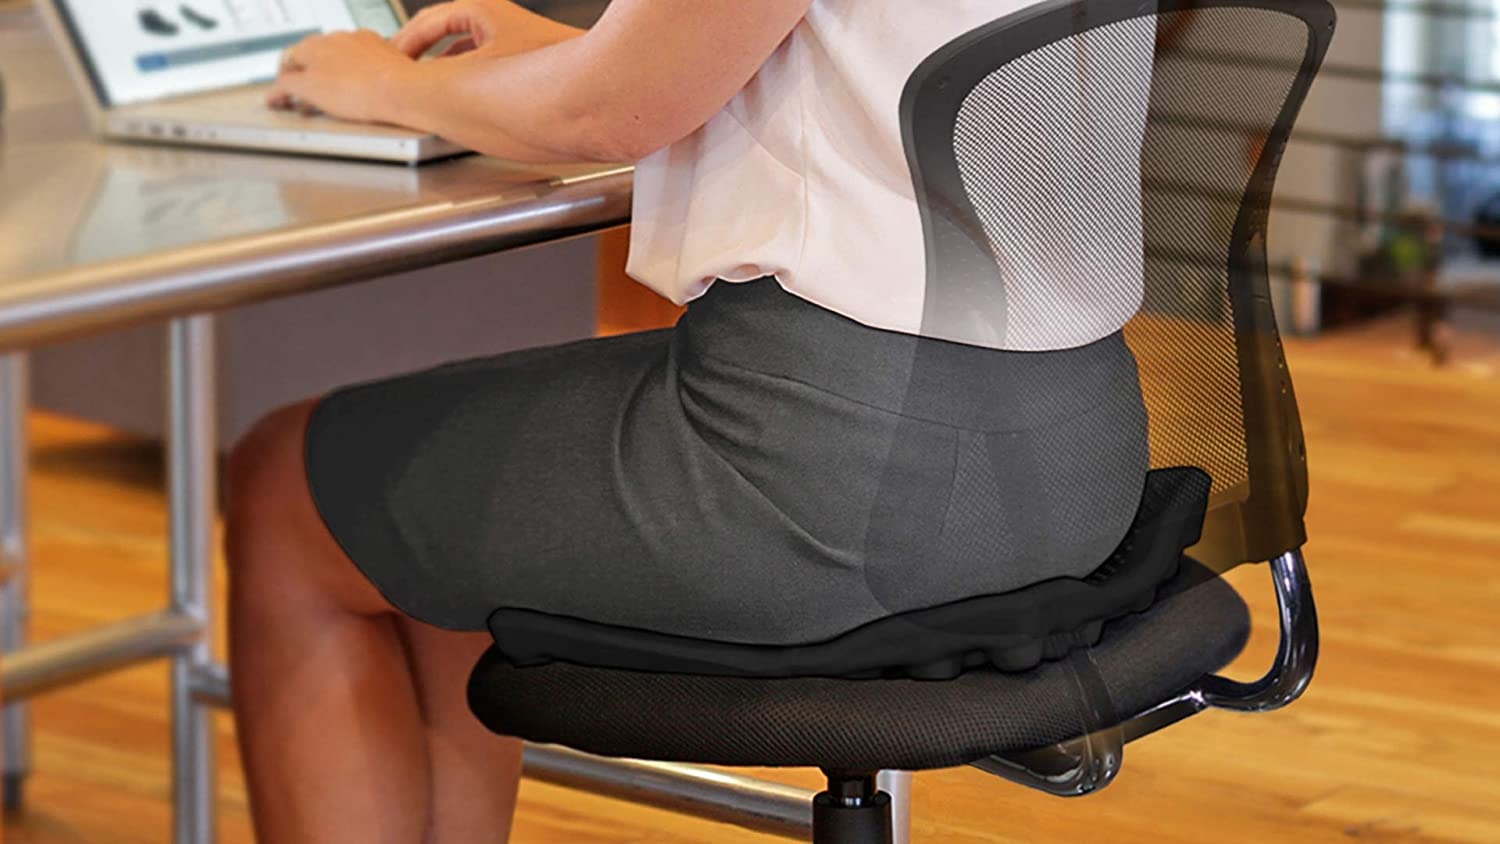 BackJoy Comfort Seat Cushion Durable EVA Foam Slip-Resistant 18x16 Breathable Size Waterproof Improves Posture Comes with Removable//Washable Cover